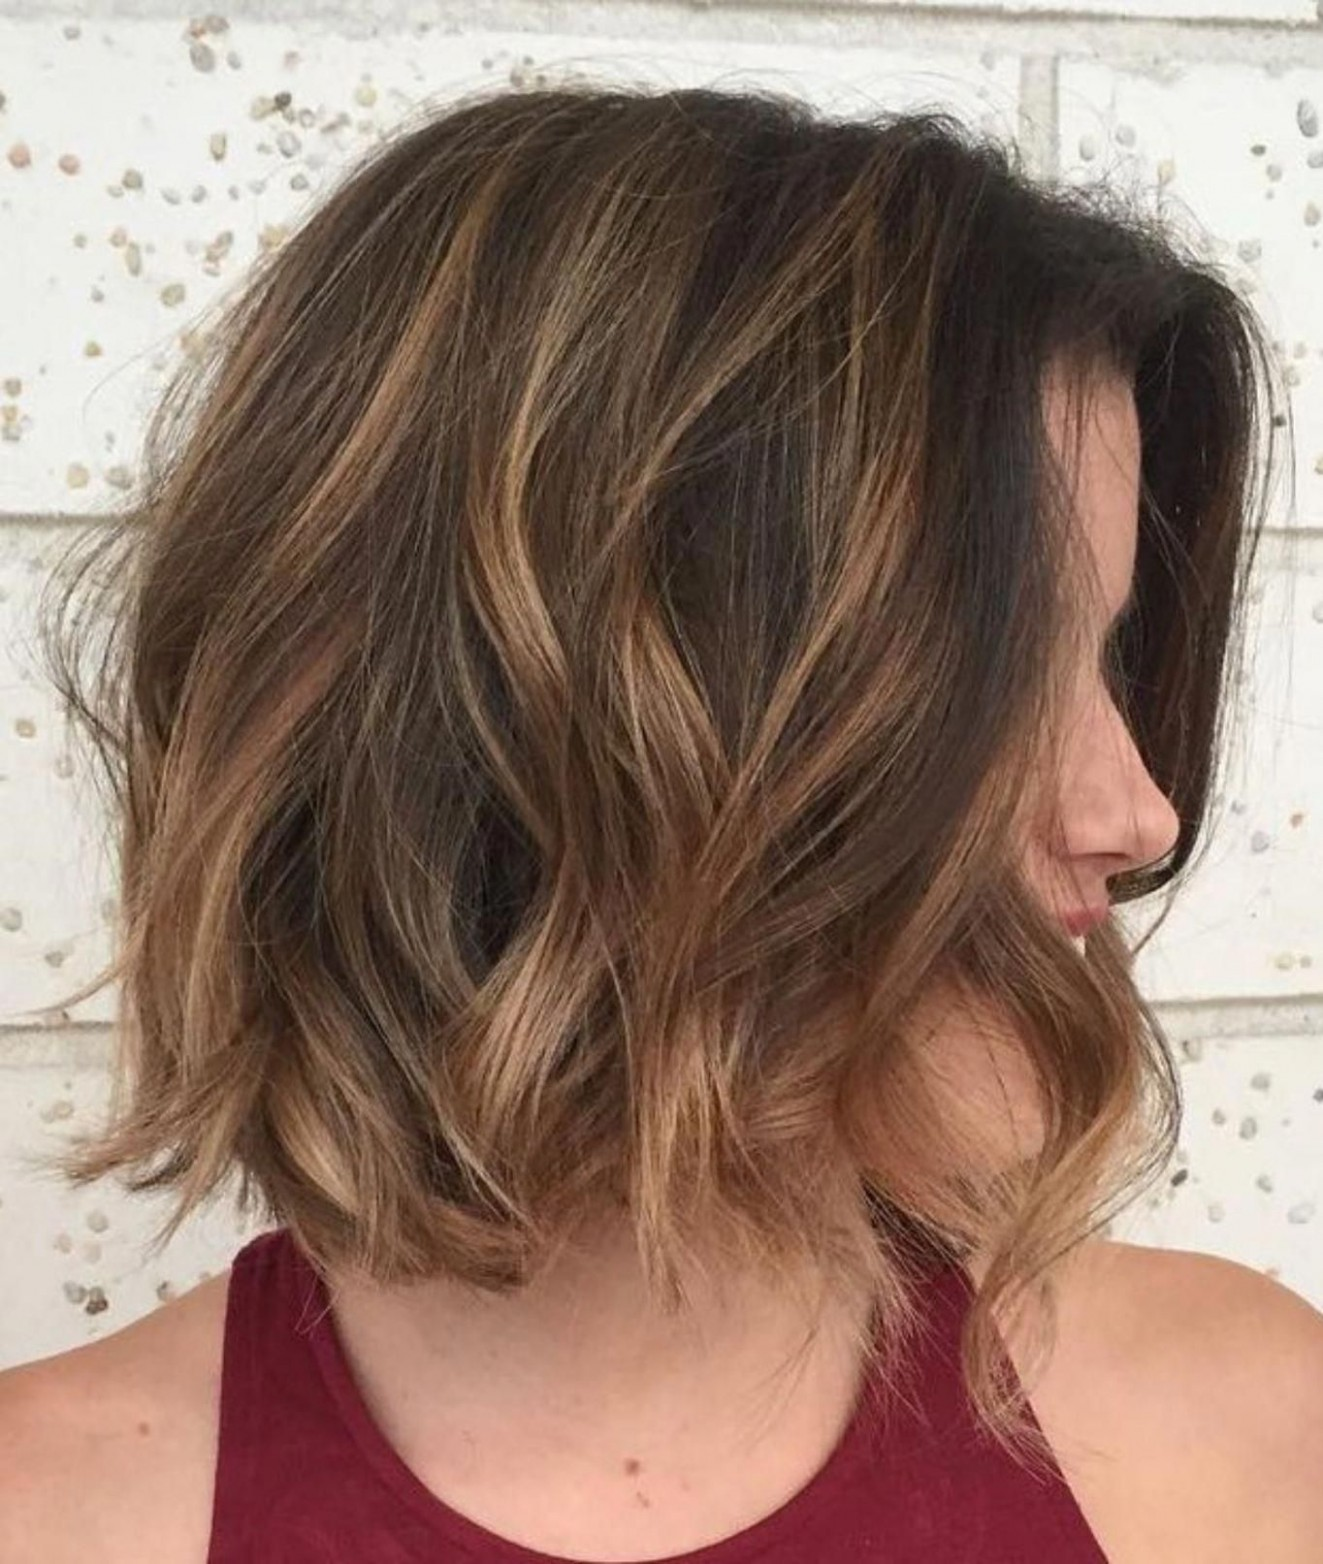 11 Different Versions of Curly Bob Hairstyle  Wavy bob hairstyles